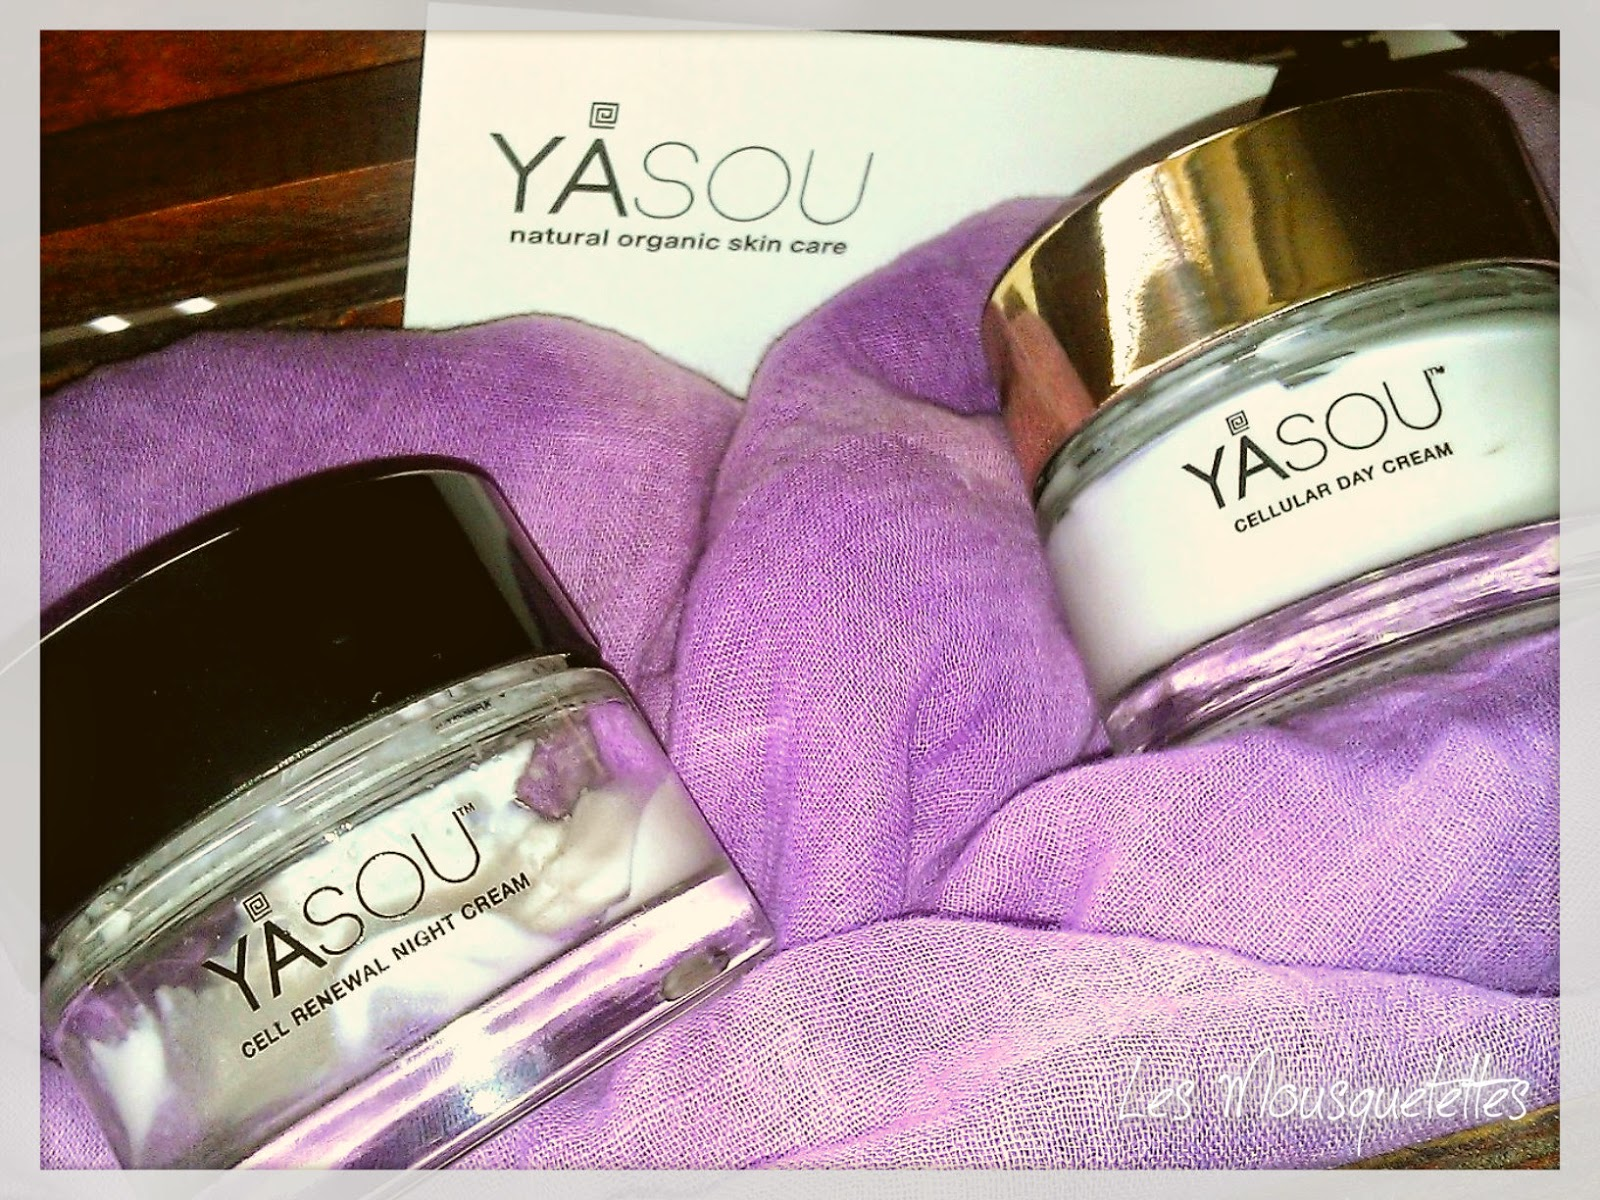 Cellular Day Cream / Cell Renewal Night Cream Yasou Skincare - Les Mousquetettes©